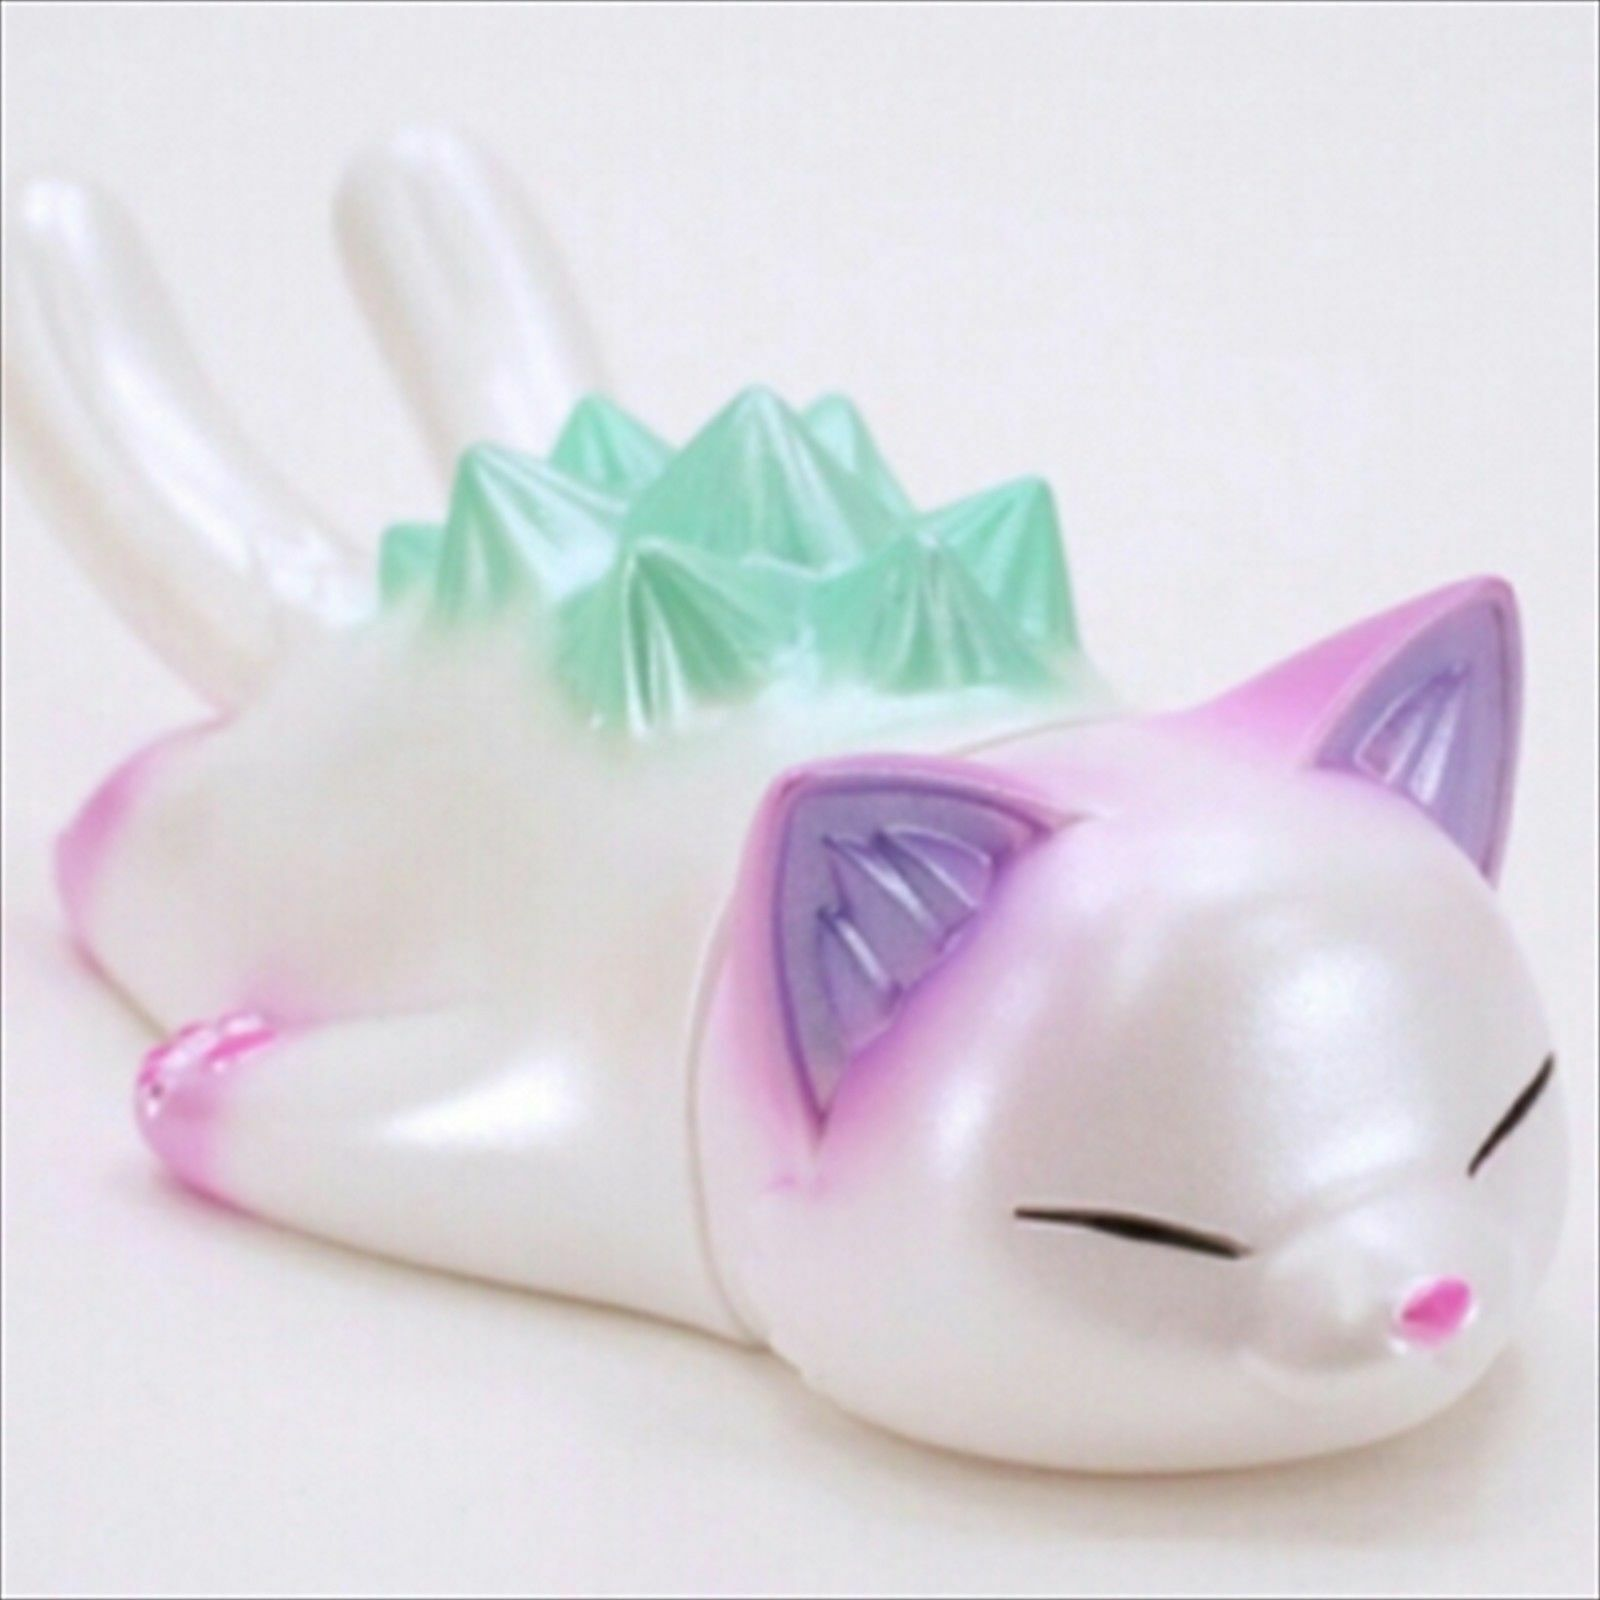 Konatsuya Negora Sleep Negora  Pearl Version Sofubi Cat cifra from Japan Rare    vendita di fama mondiale online